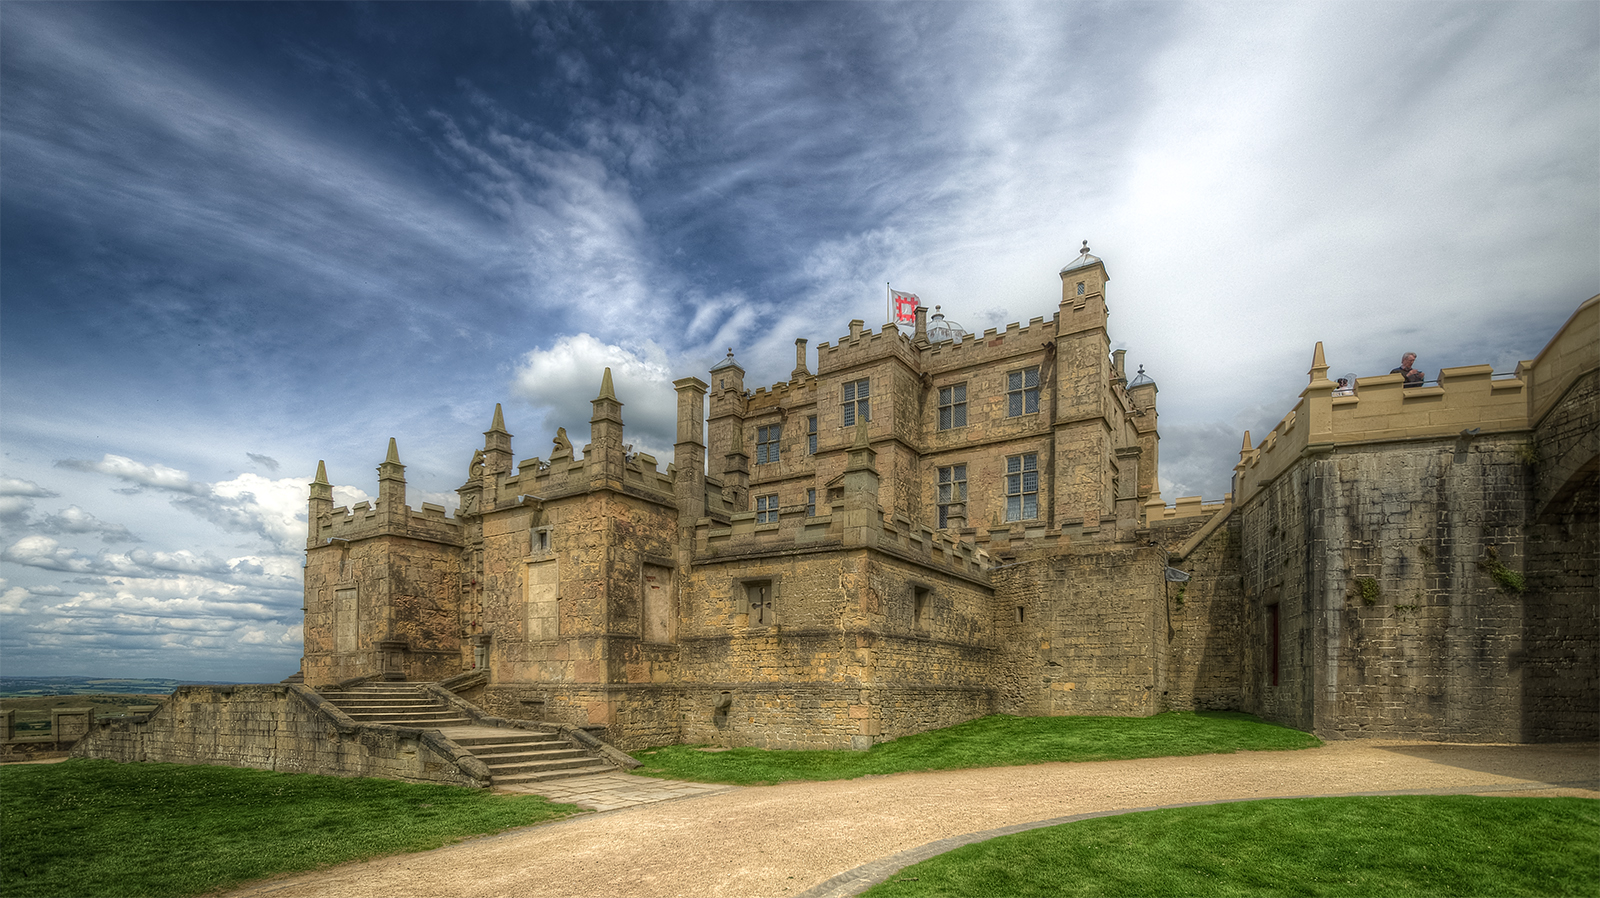 Bolsover Castle| ©Adam J/Flickr